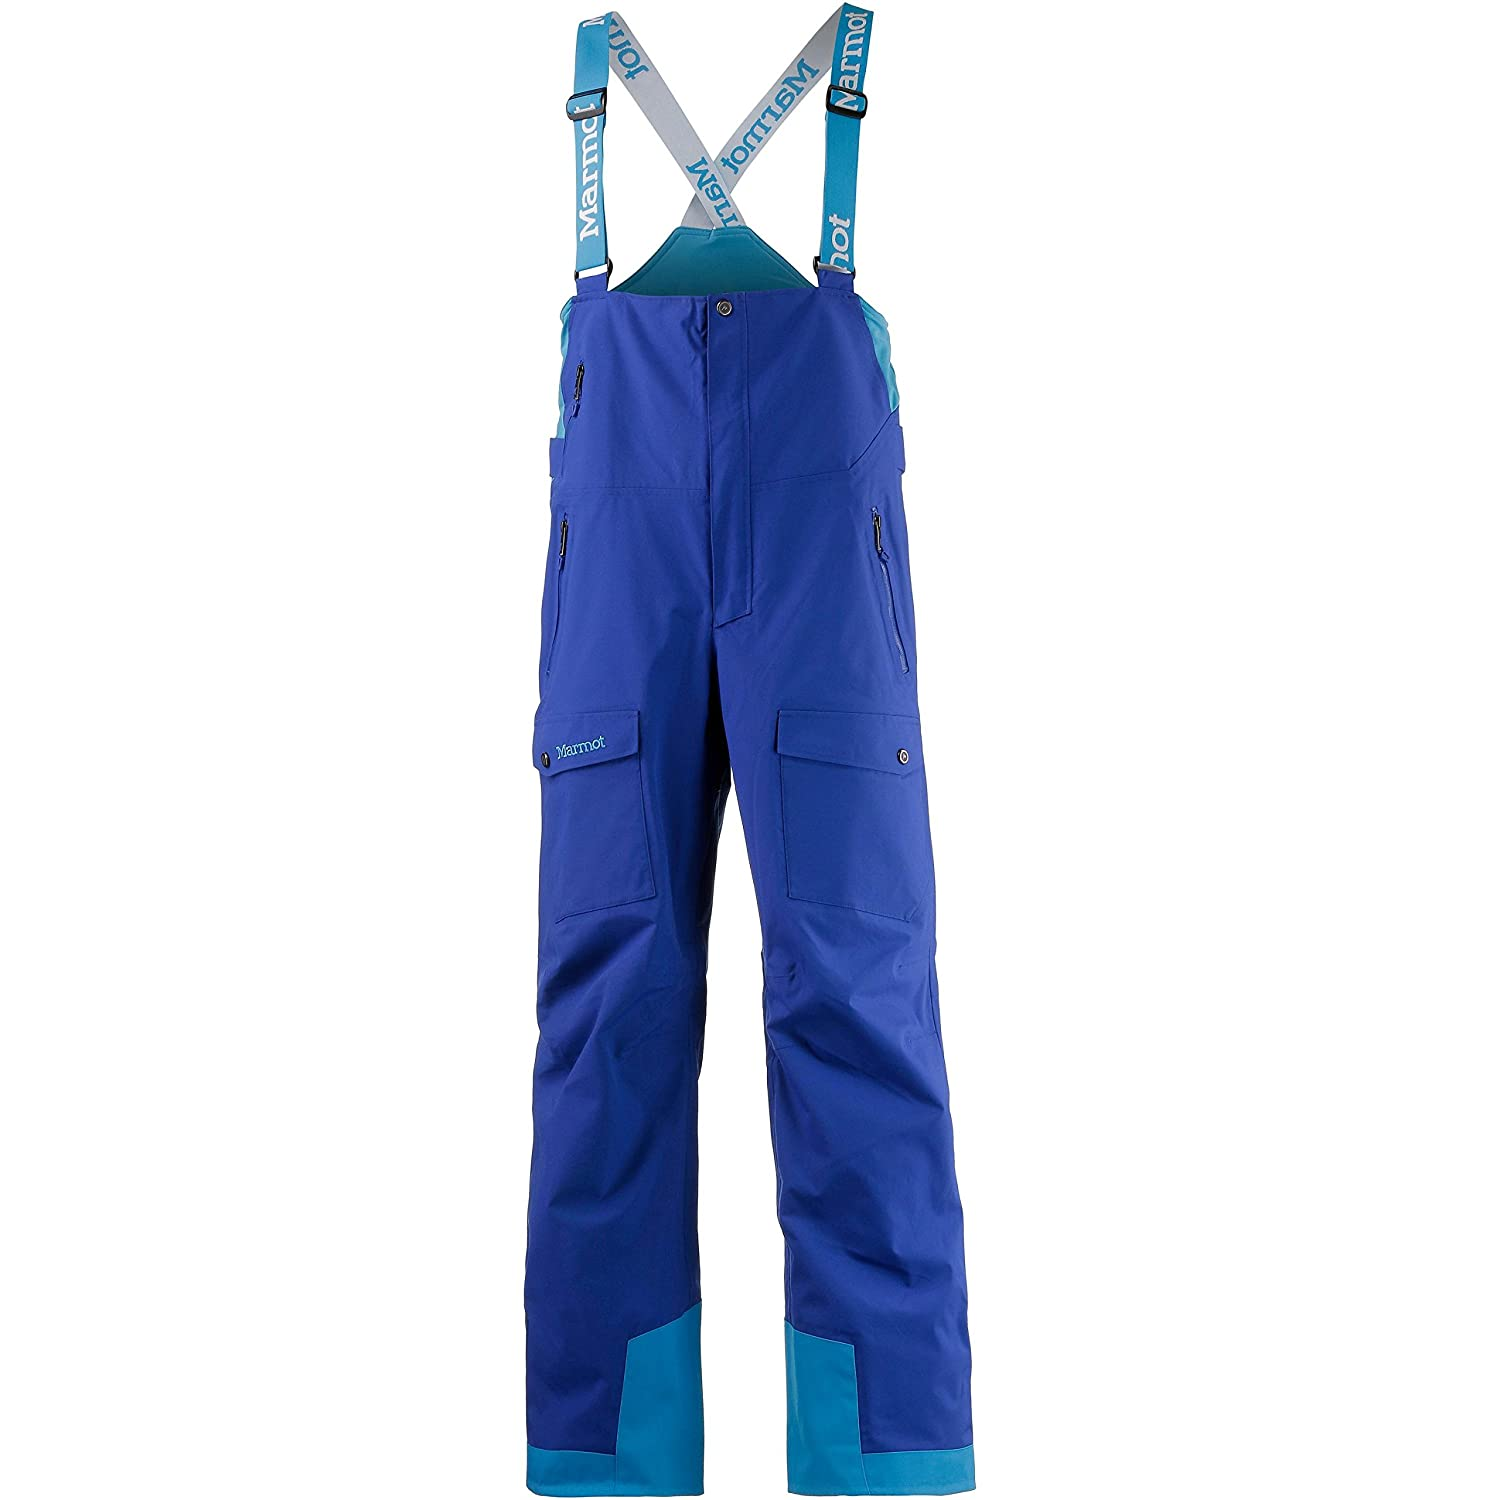 0f1225ae7 Marmot Rosco Bib - Men s-Surf Bahama Blue-Regular 71090-3868-M ...